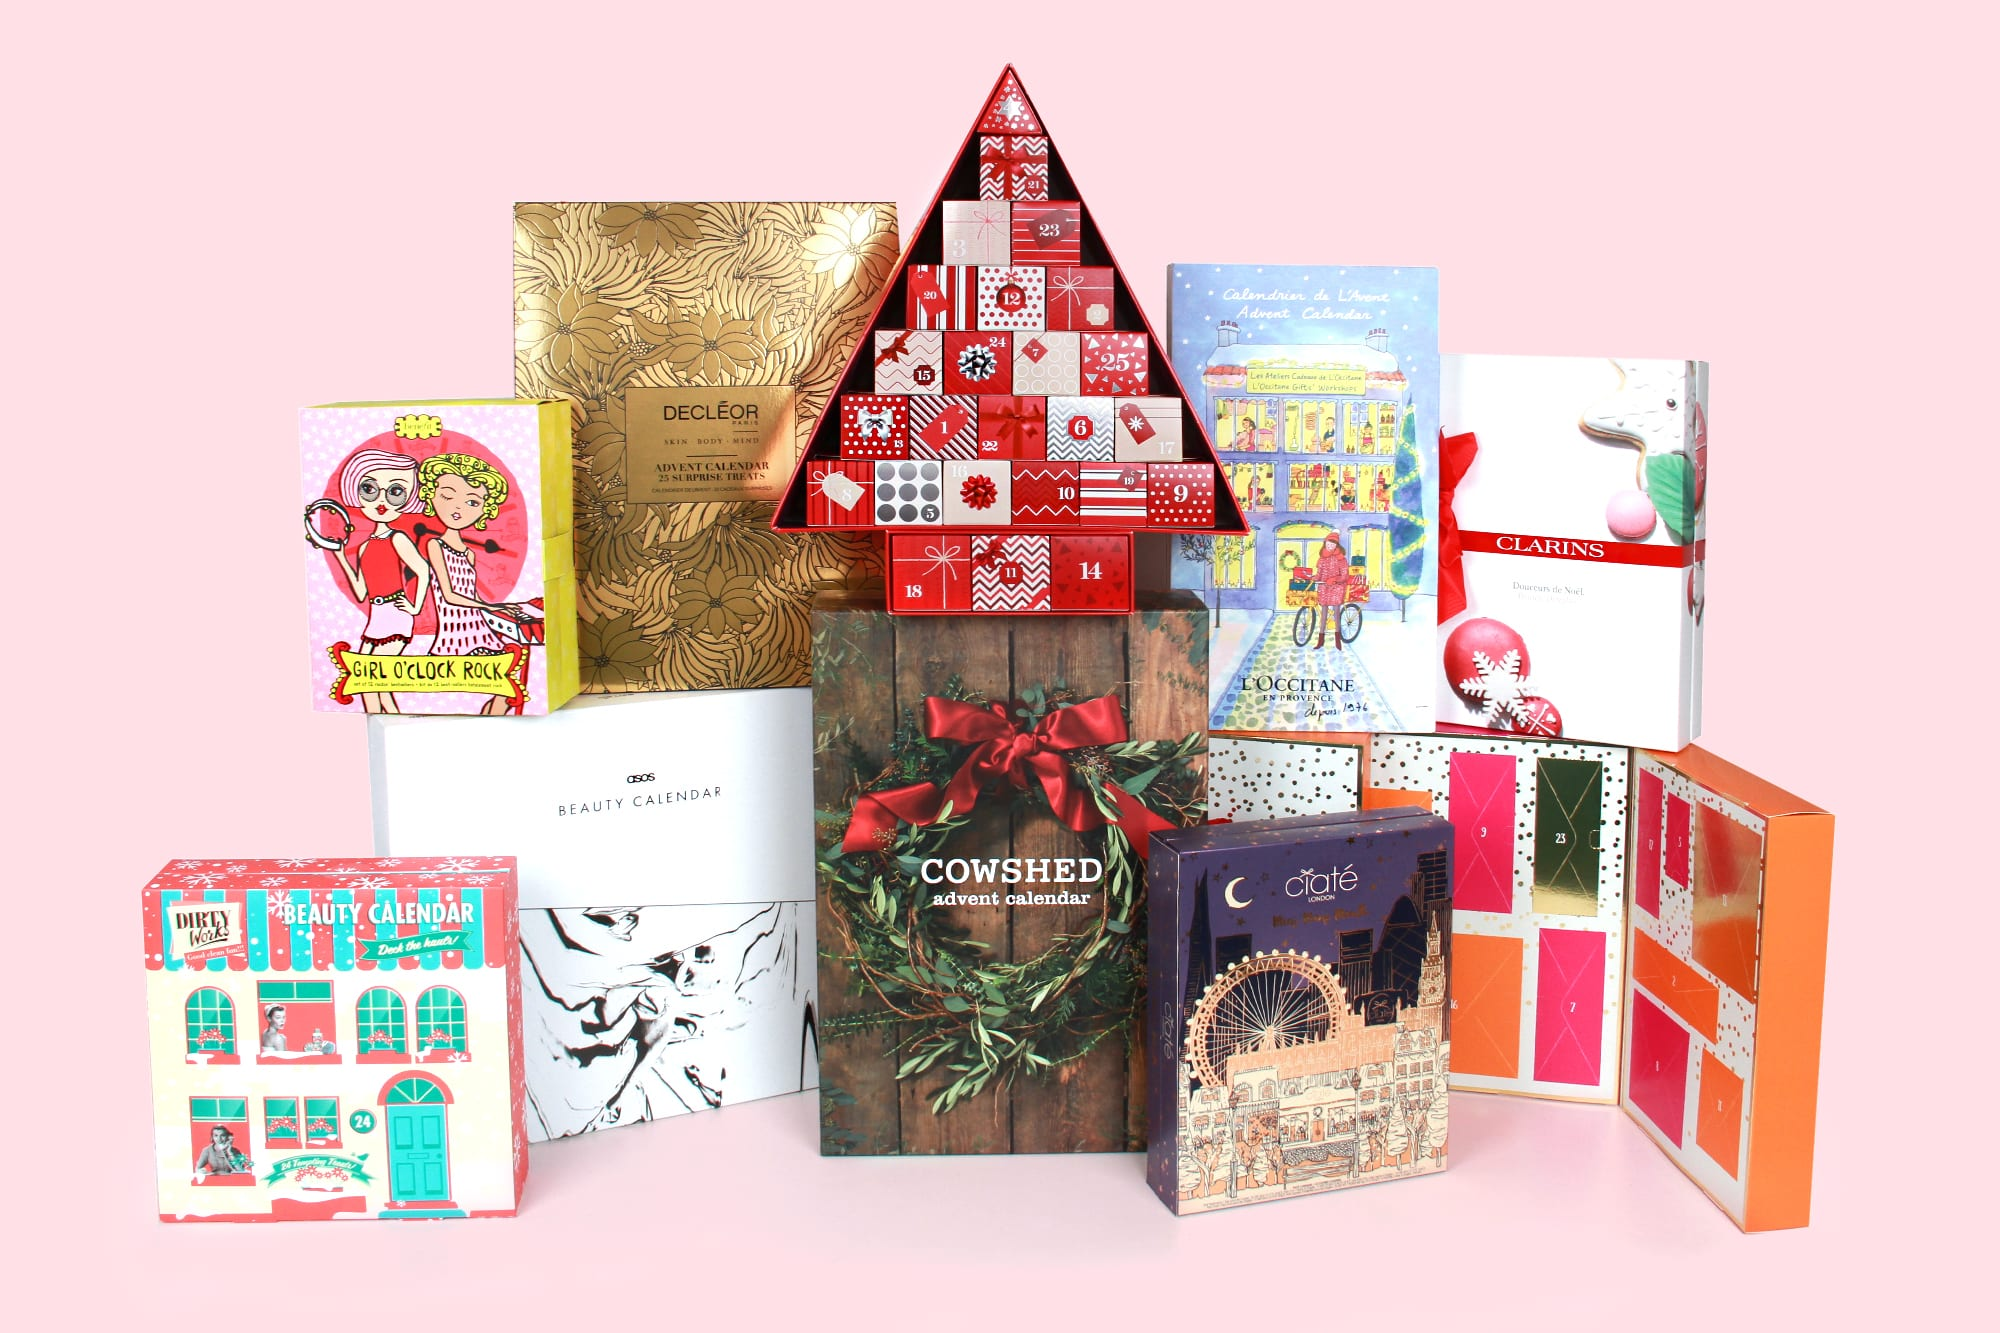 The Best Beauty Advent Calendars